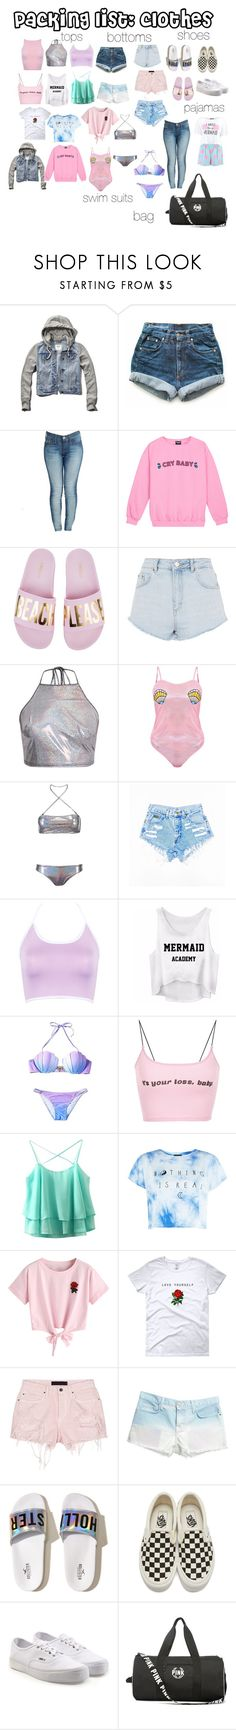 """packing list: clothes"" by crybarbietears ❤ liked on Polyvore featuring Abercrombie & Fitch, Levi's, True Religion, Topshop, Boohoo, WithChic, Alexander Wang, Current/Elliott, Hollister Co. and Vans"